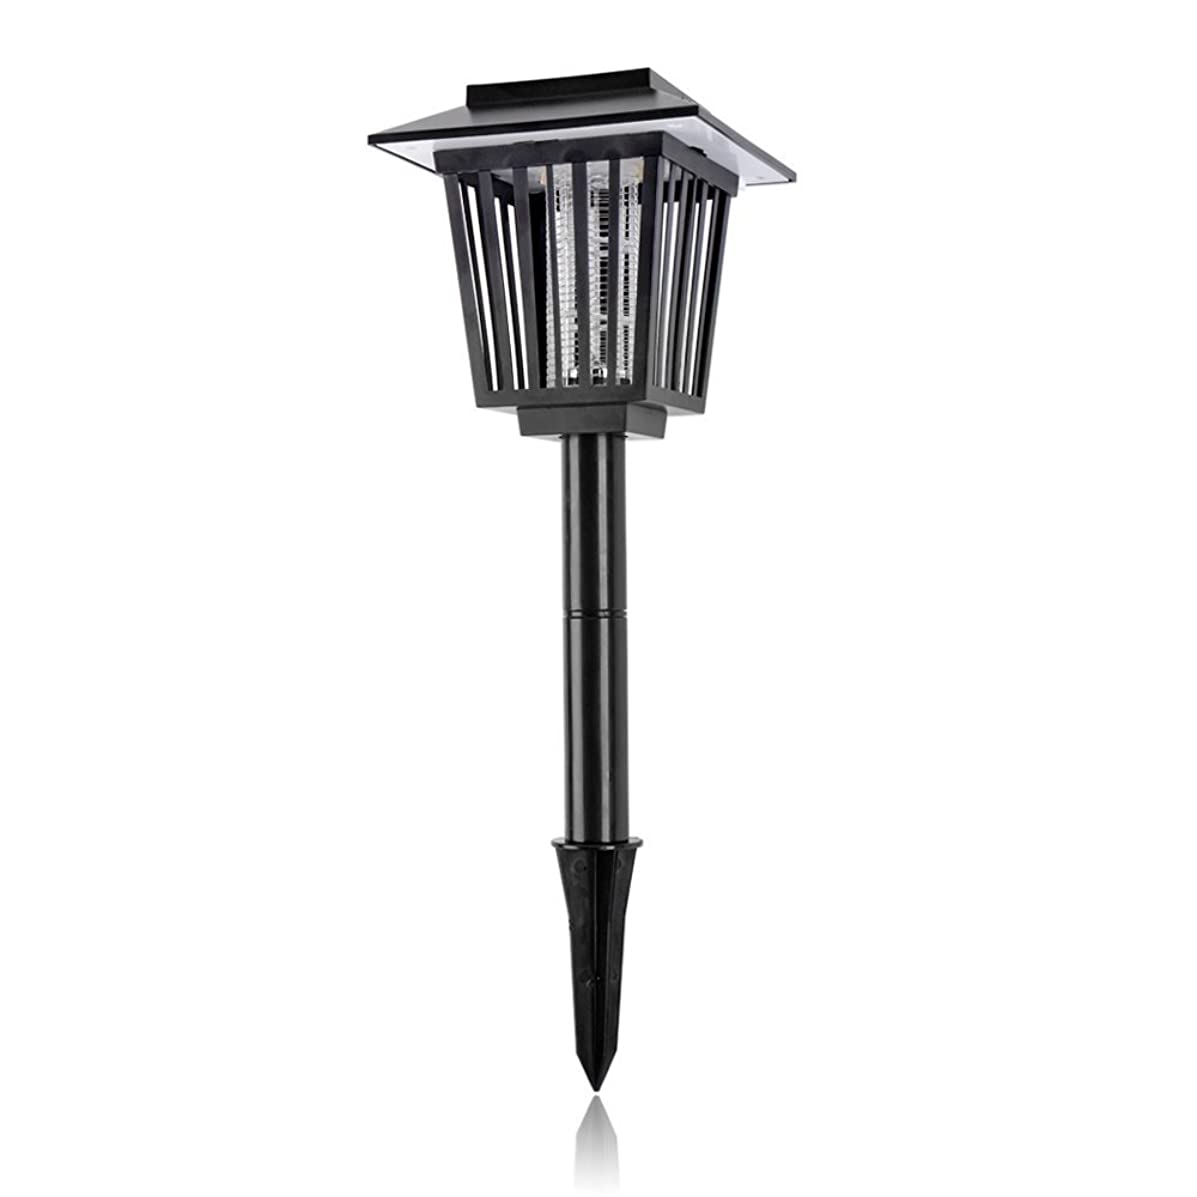 Solar Mosquito Zapper Outdoor Bug Killer Backyard Insect Killing Lamp Hanging or Stake in Ground Garden Patio Lawn Camping Cordless Solar Powered Pest Control Light Best Stinger Mosquitoes Moth Fly